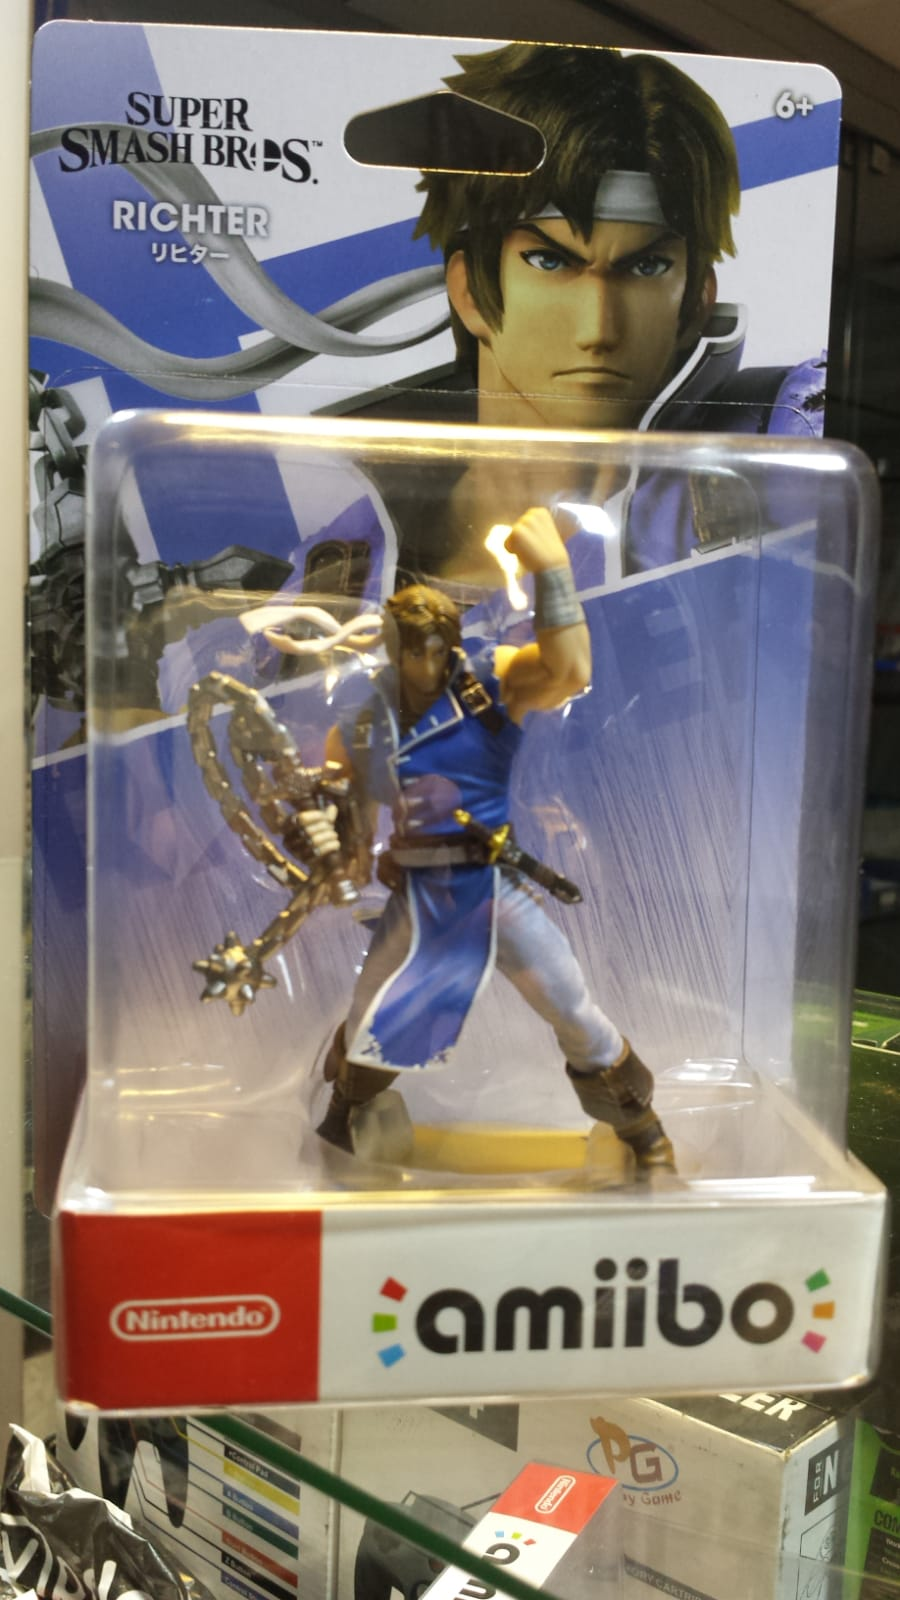 Amiibo Super Smash Bros  Richter